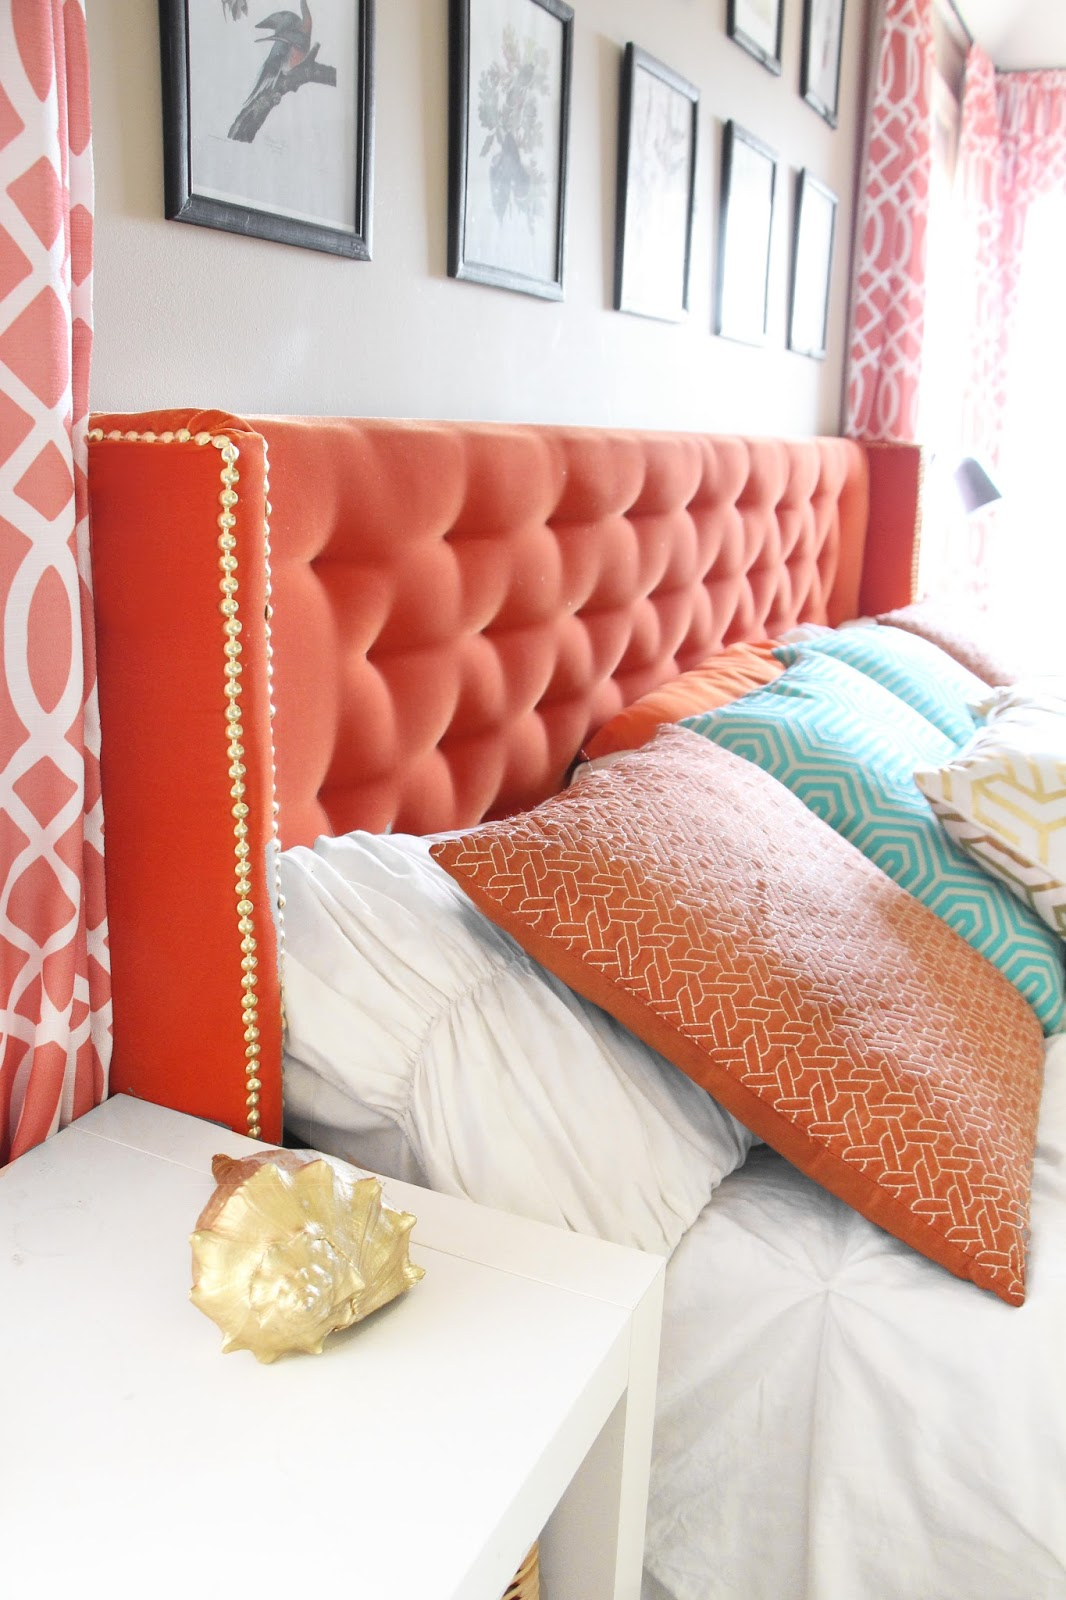 Diy Wingback Tufted Headboard September 20 2016